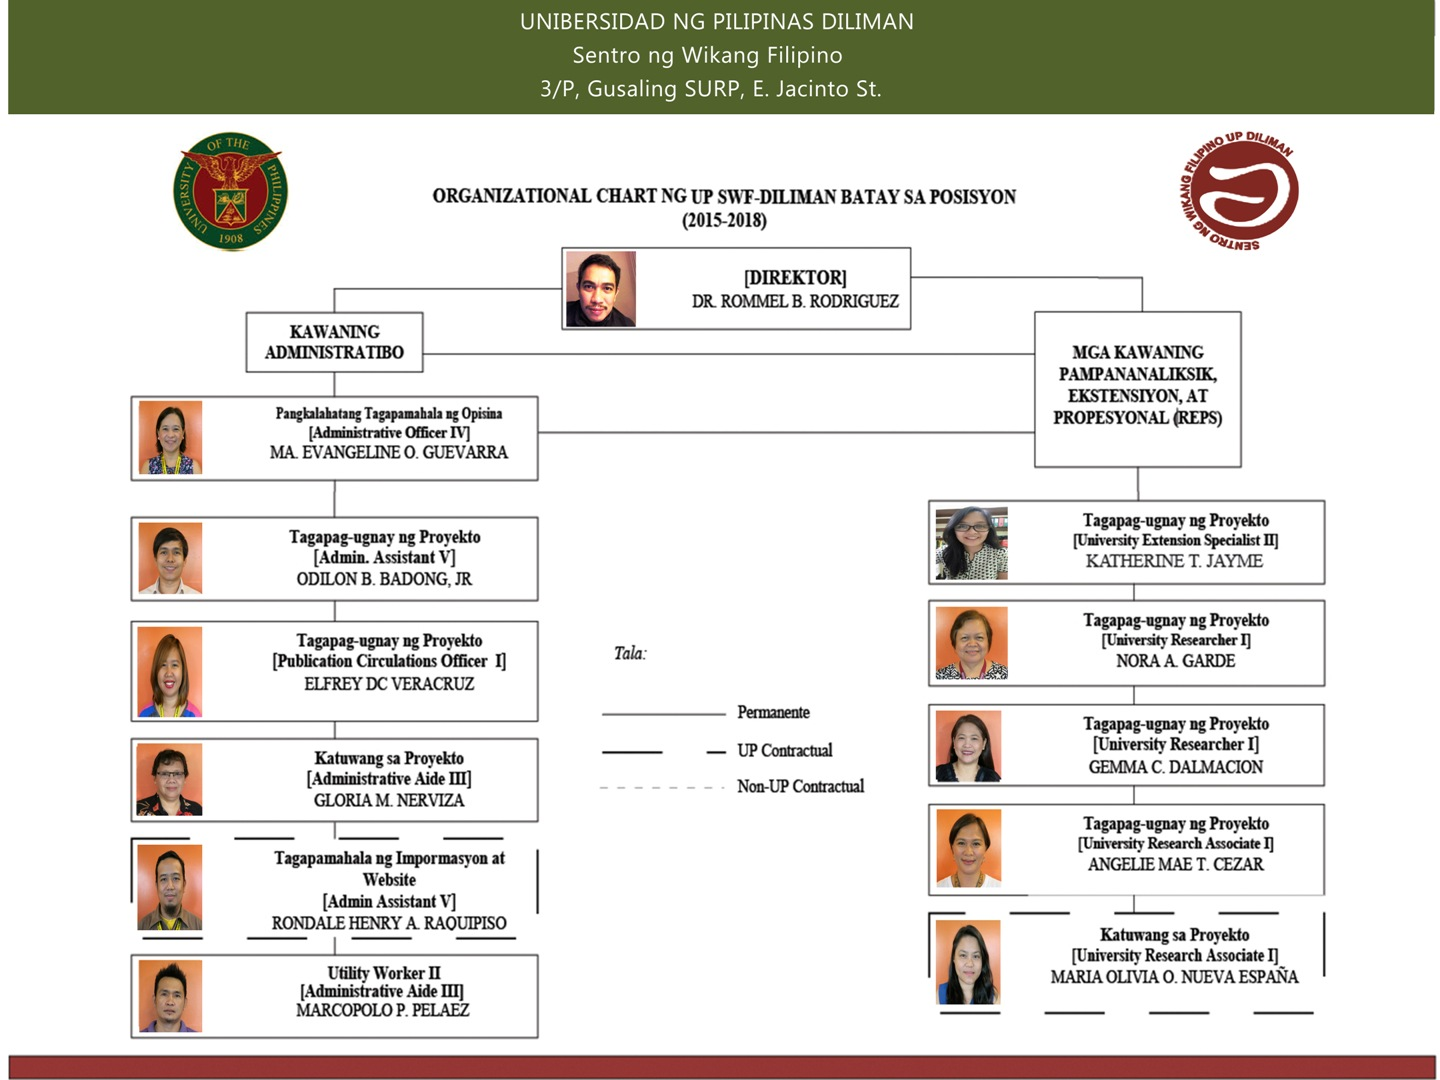 Org Chart SWF 9 NEWEST 06292018 RS